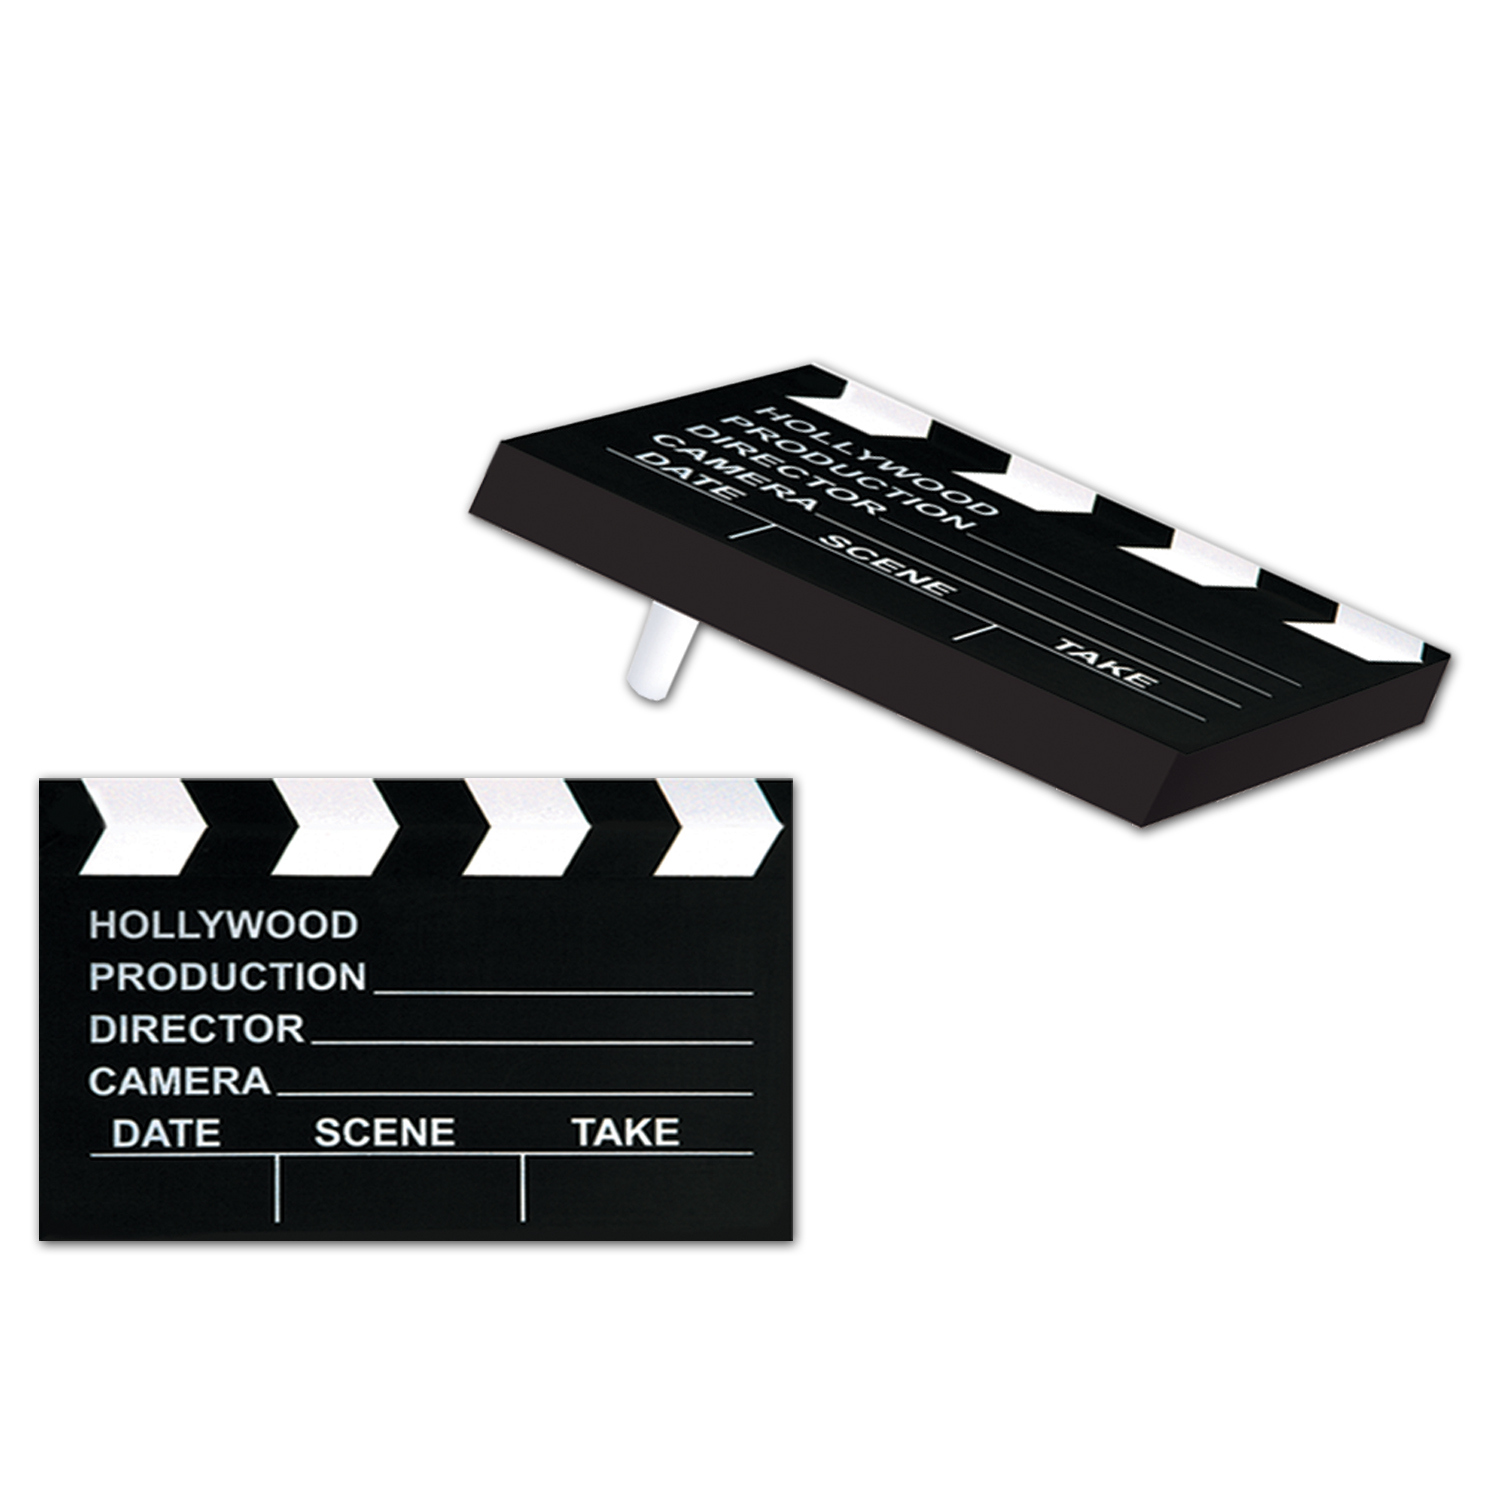 Clapboard Racket Raise N Noisemaker (Pack of 50) Clapboard Racket Raise N Noisemaker, party favor, new years eve, hollywood, wholesale, inexpensive, bulk